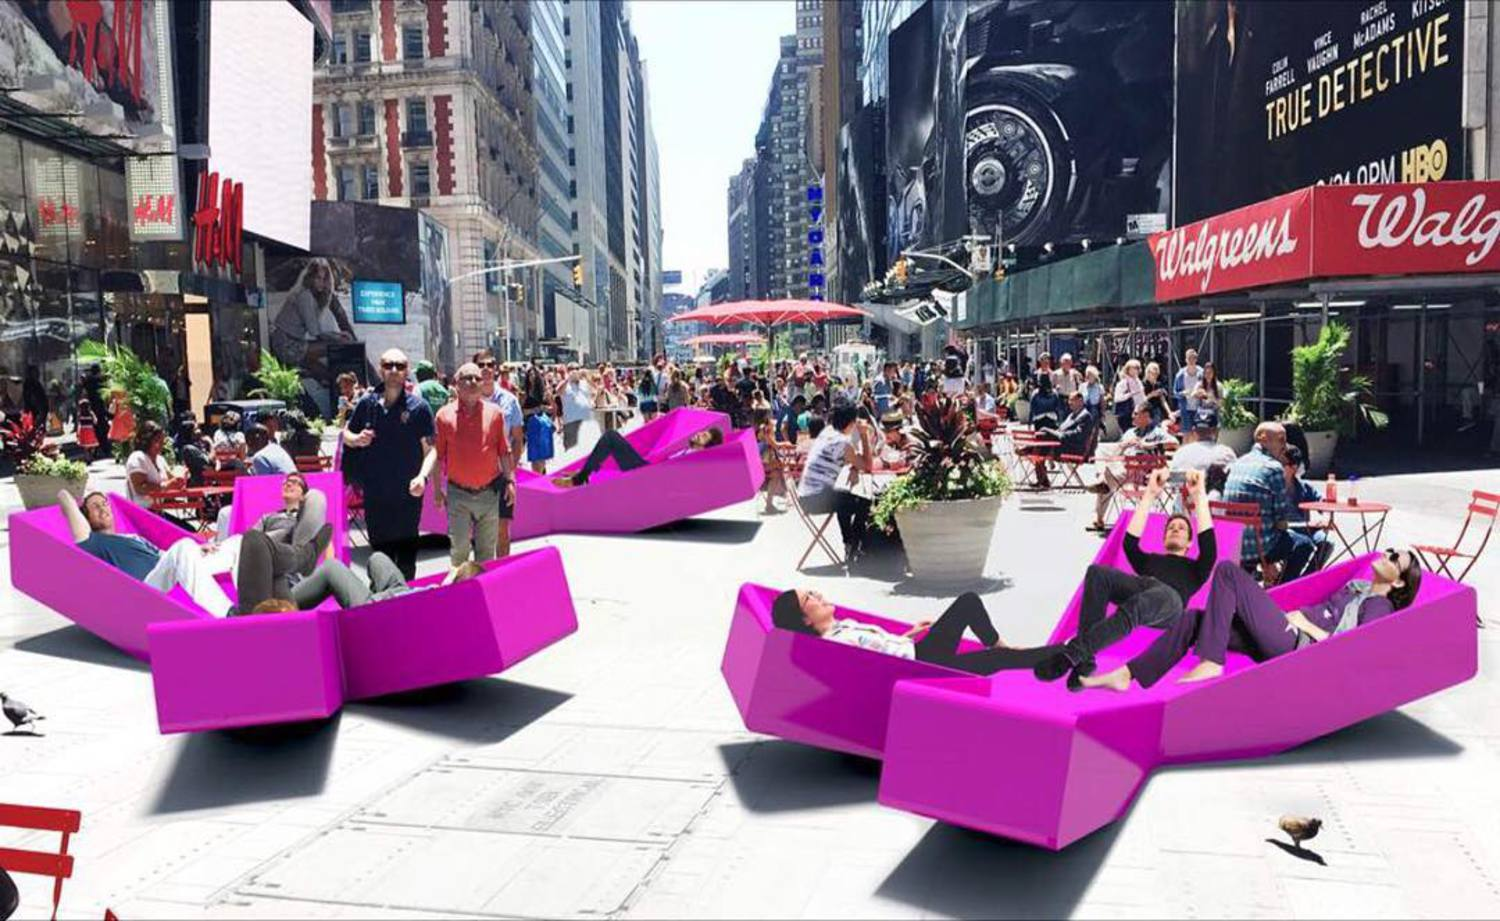 ❌❌❌ XXX Returns to Times Square But As A Sign of Affection to Its Plaza Visitors Opening August 24, 2016 #tsq #tsqxxx #sherrydobbin #juergenmayerh #jmayerharchitects #jmayerh #publicart #public #nyc #xxx #art #usa #usa🇺🇸 #hot #Lounge #tsqselfie